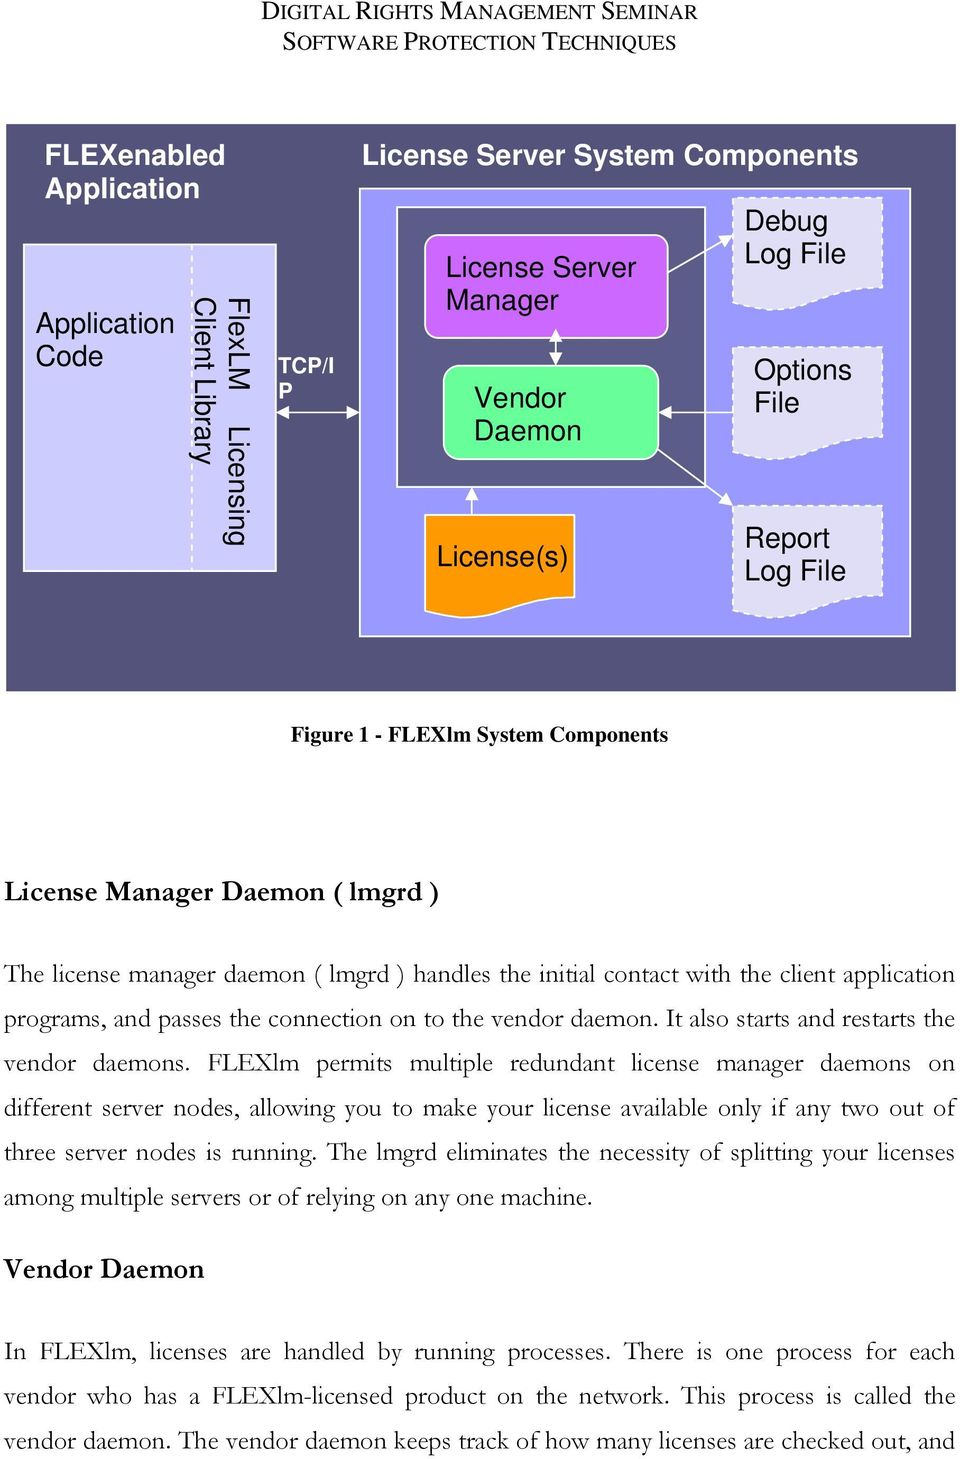 FLOATING LICENSE MANAGEMENT - PDF